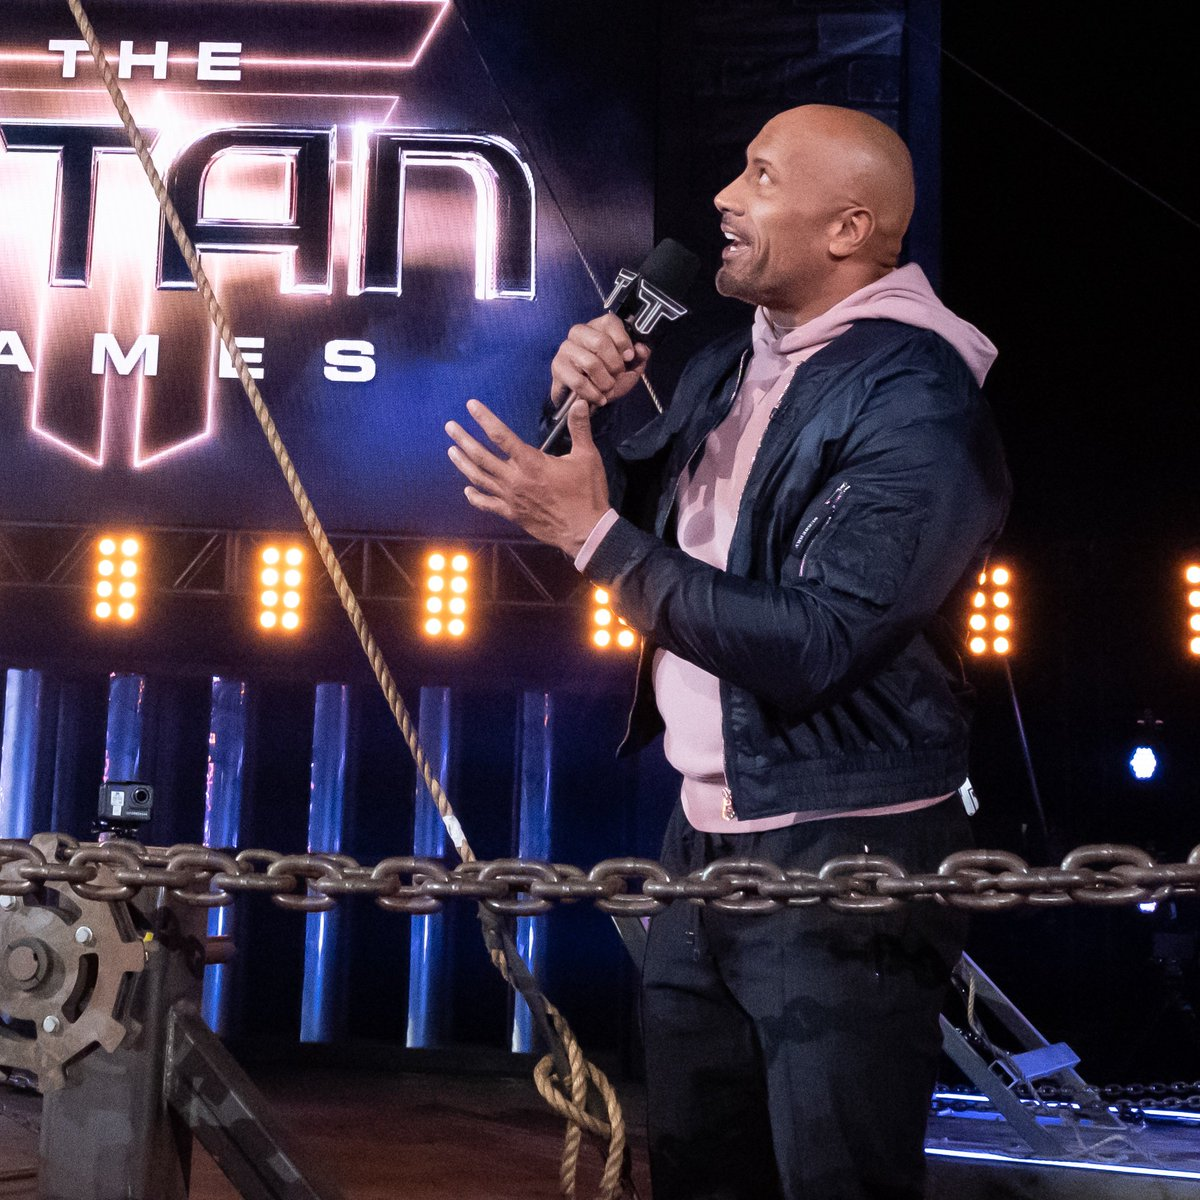 RT @nbctitangames: Don't worry, @KevinHart4real is @therock's very good friend. ???? https://t.co/ss24jHOFMu